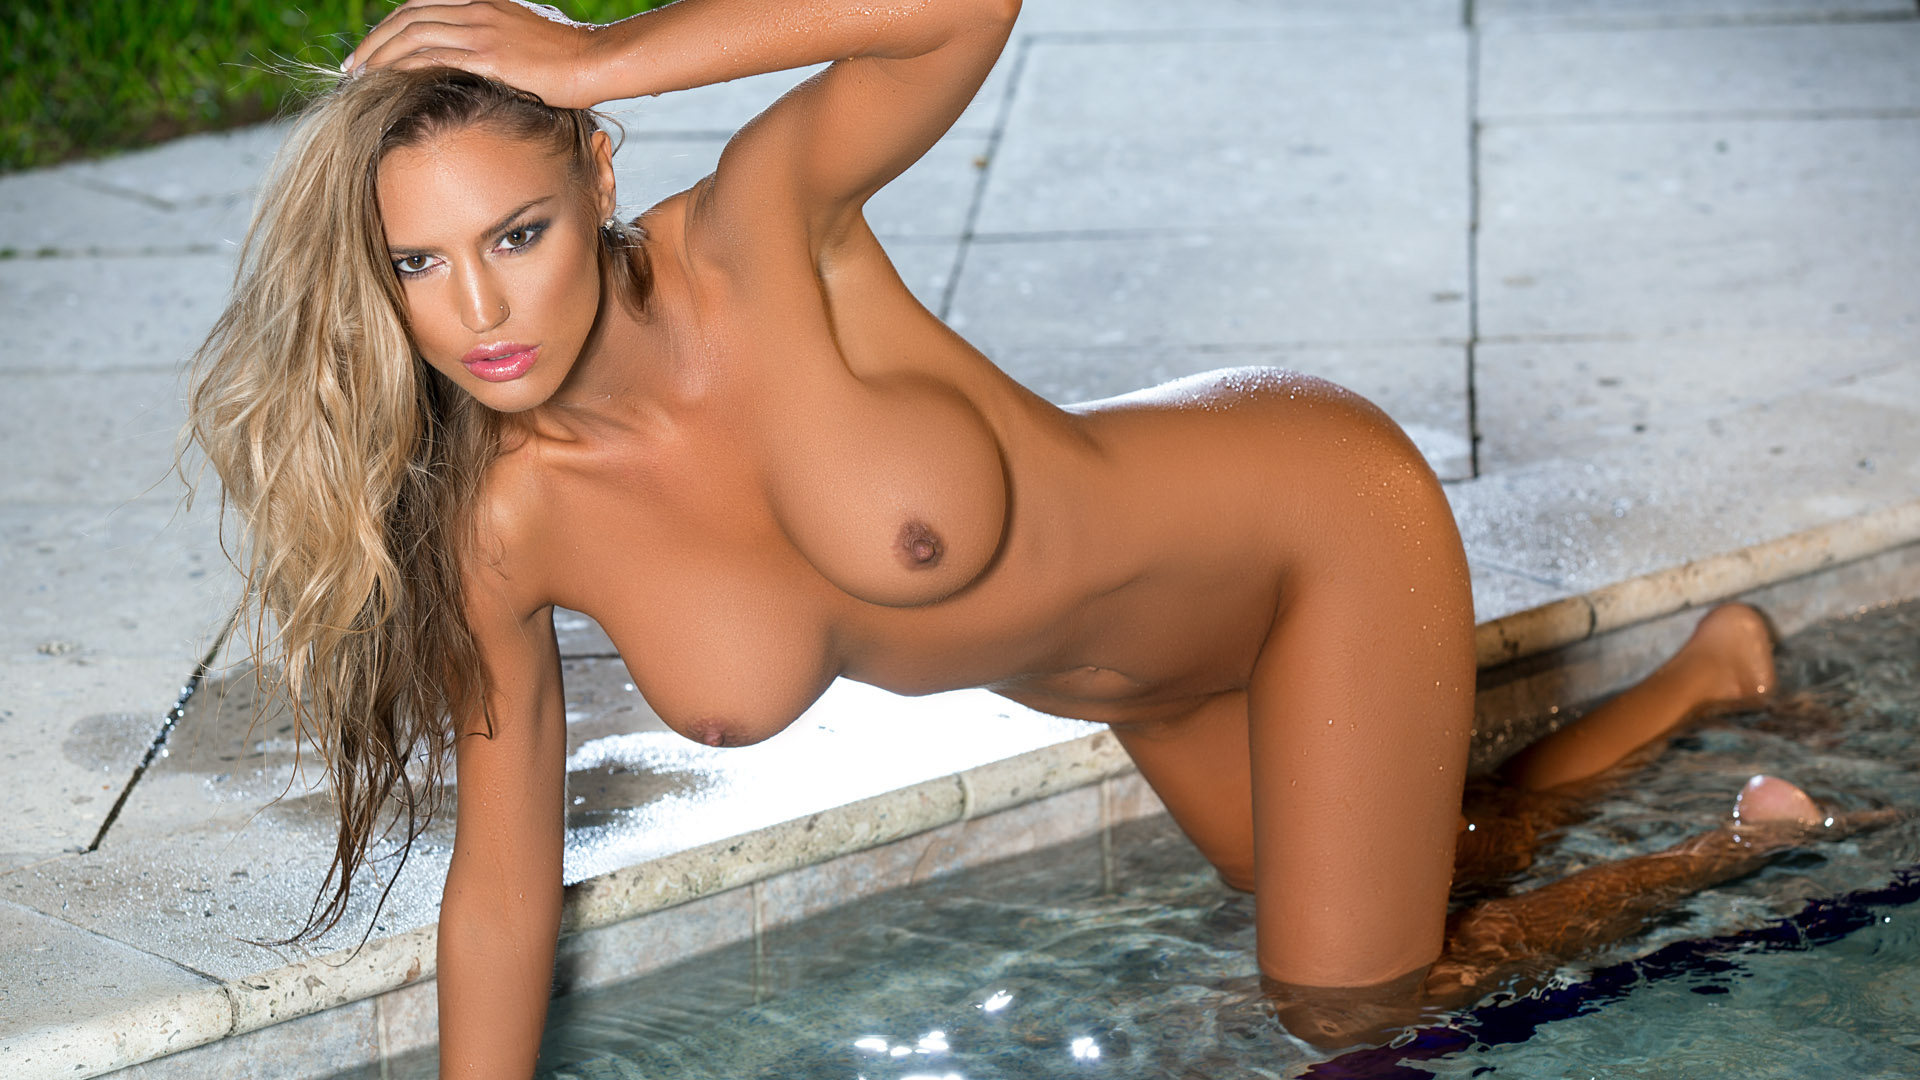 Playboy nudes by the hottest celebrities